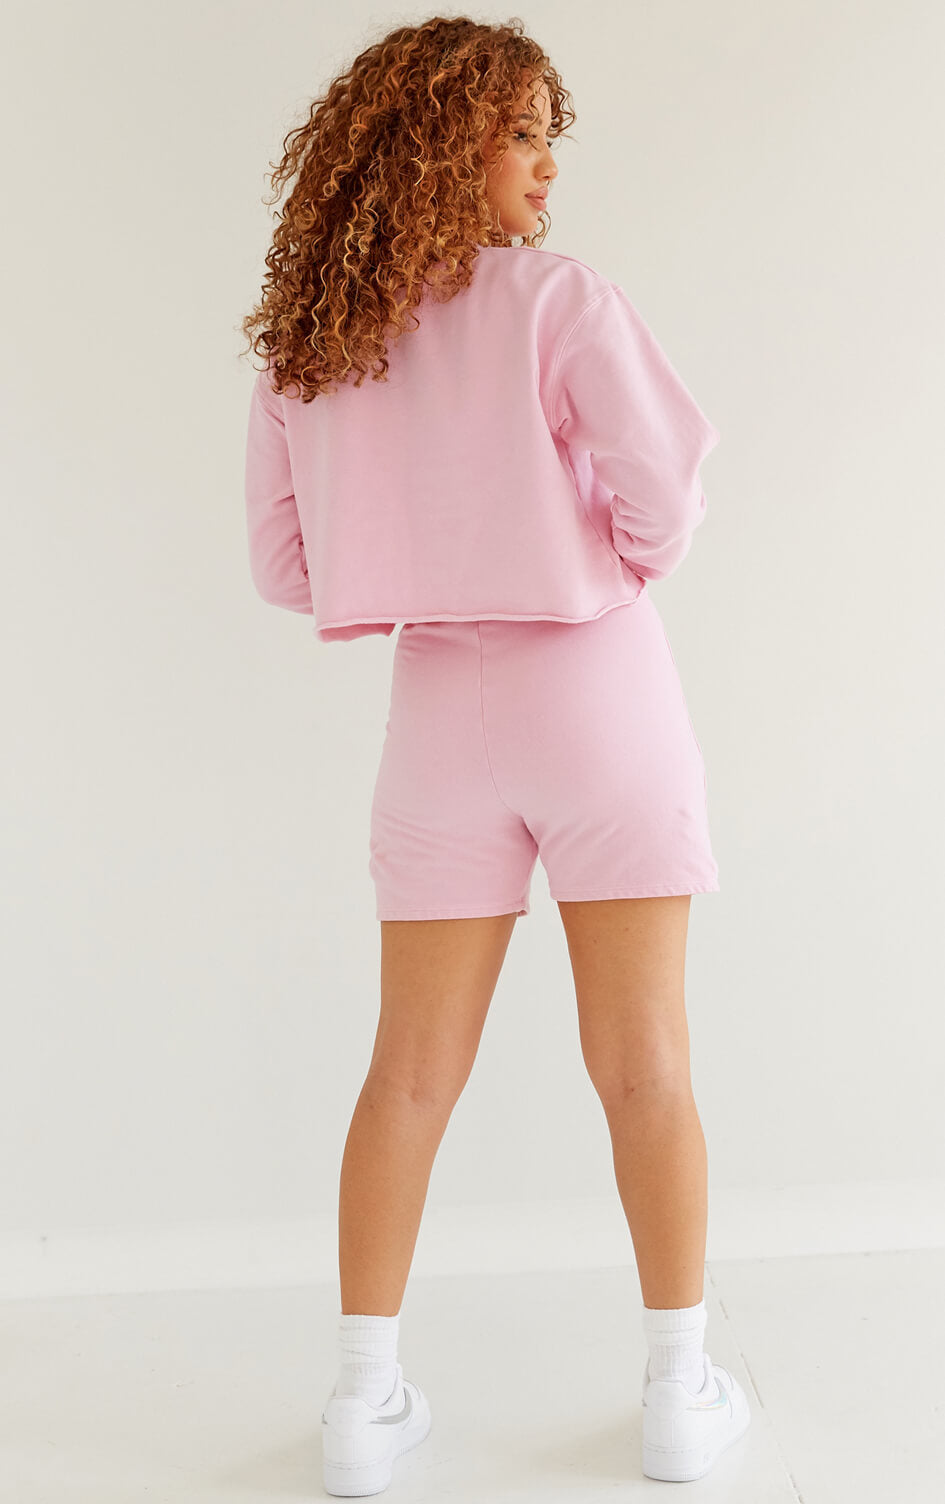 shop-dana-scott-sweet-like-candy-collection-bazooka-cropped-fleece-sweatshirt